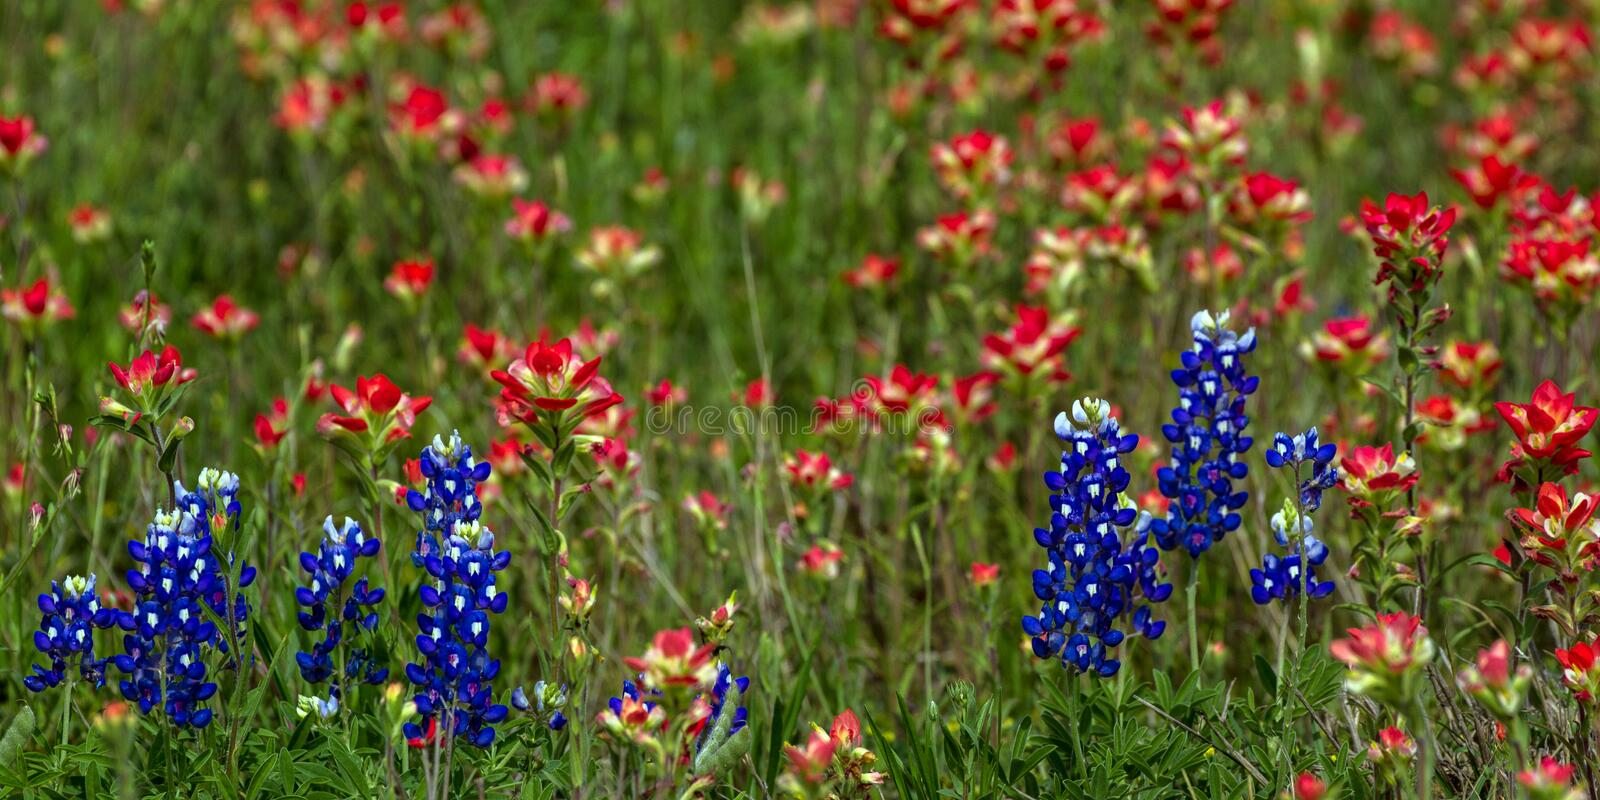 Closeup of Bluebonnets and Indian Paintbrushes in the Texas Hill Country photos libres de droits